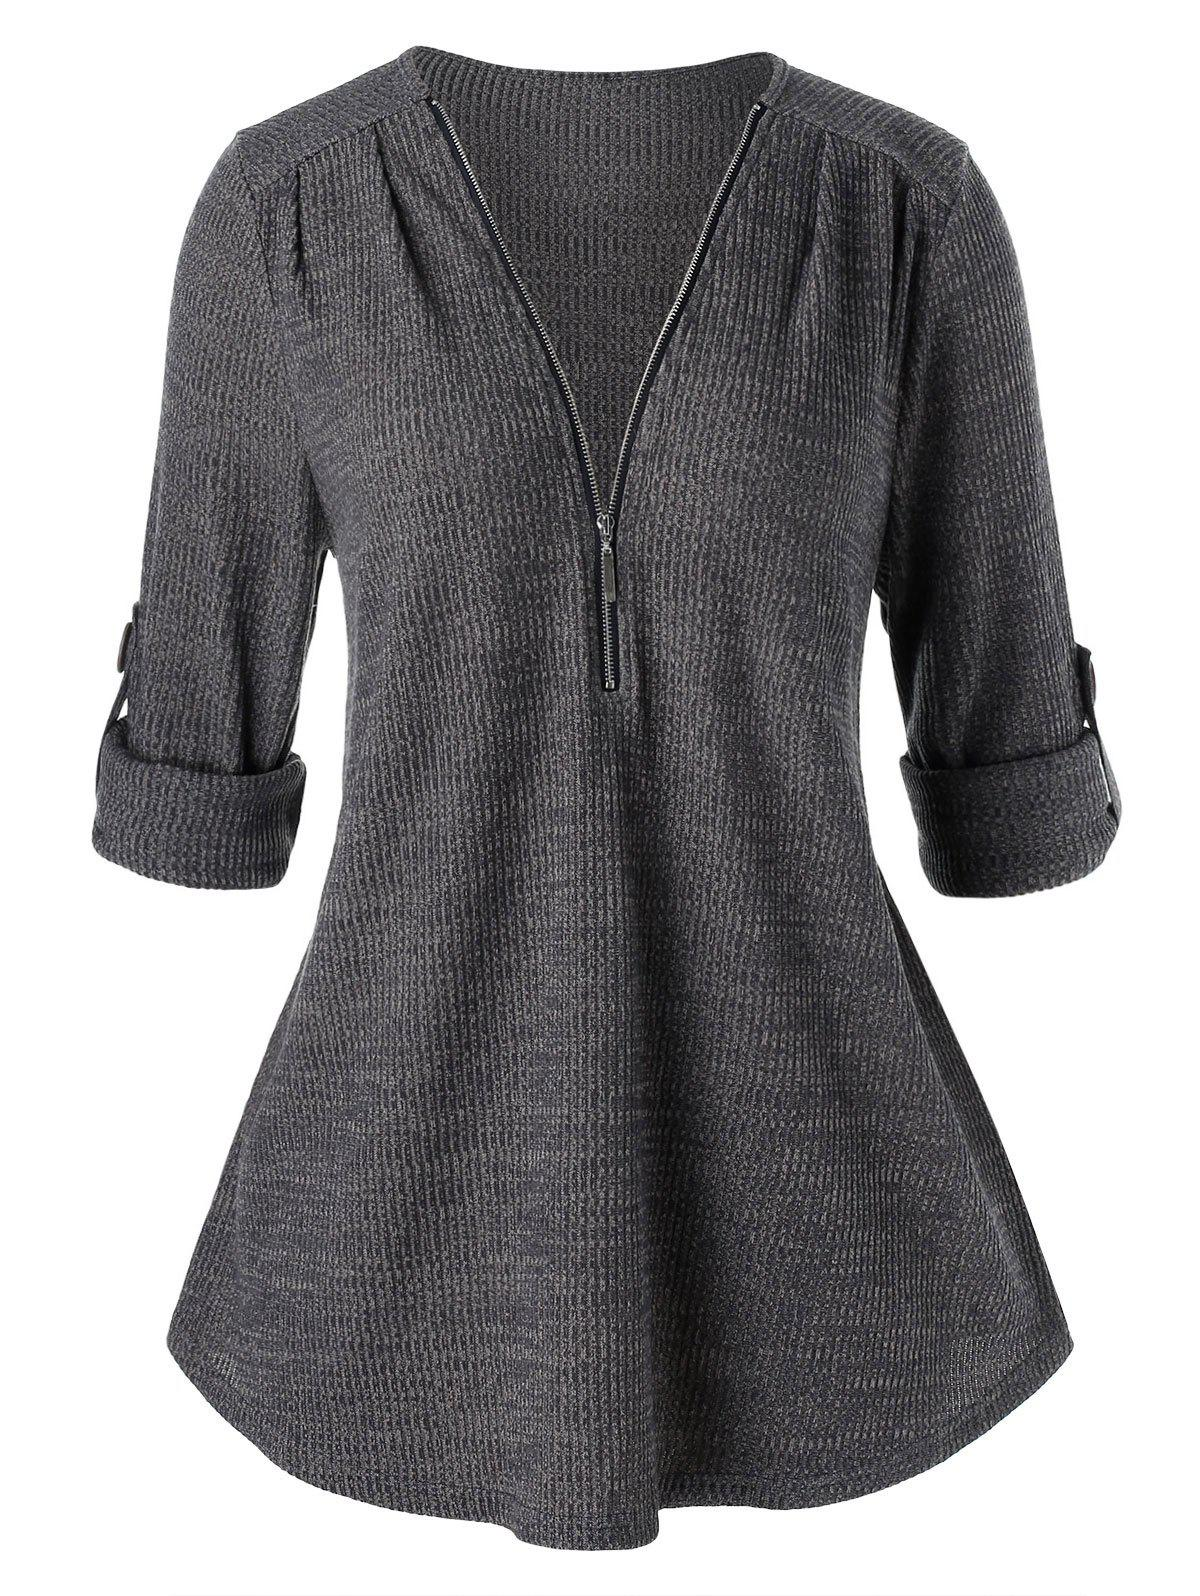 Plus Size Solid V Neck Zippered Sweater - CARBON GRAY L